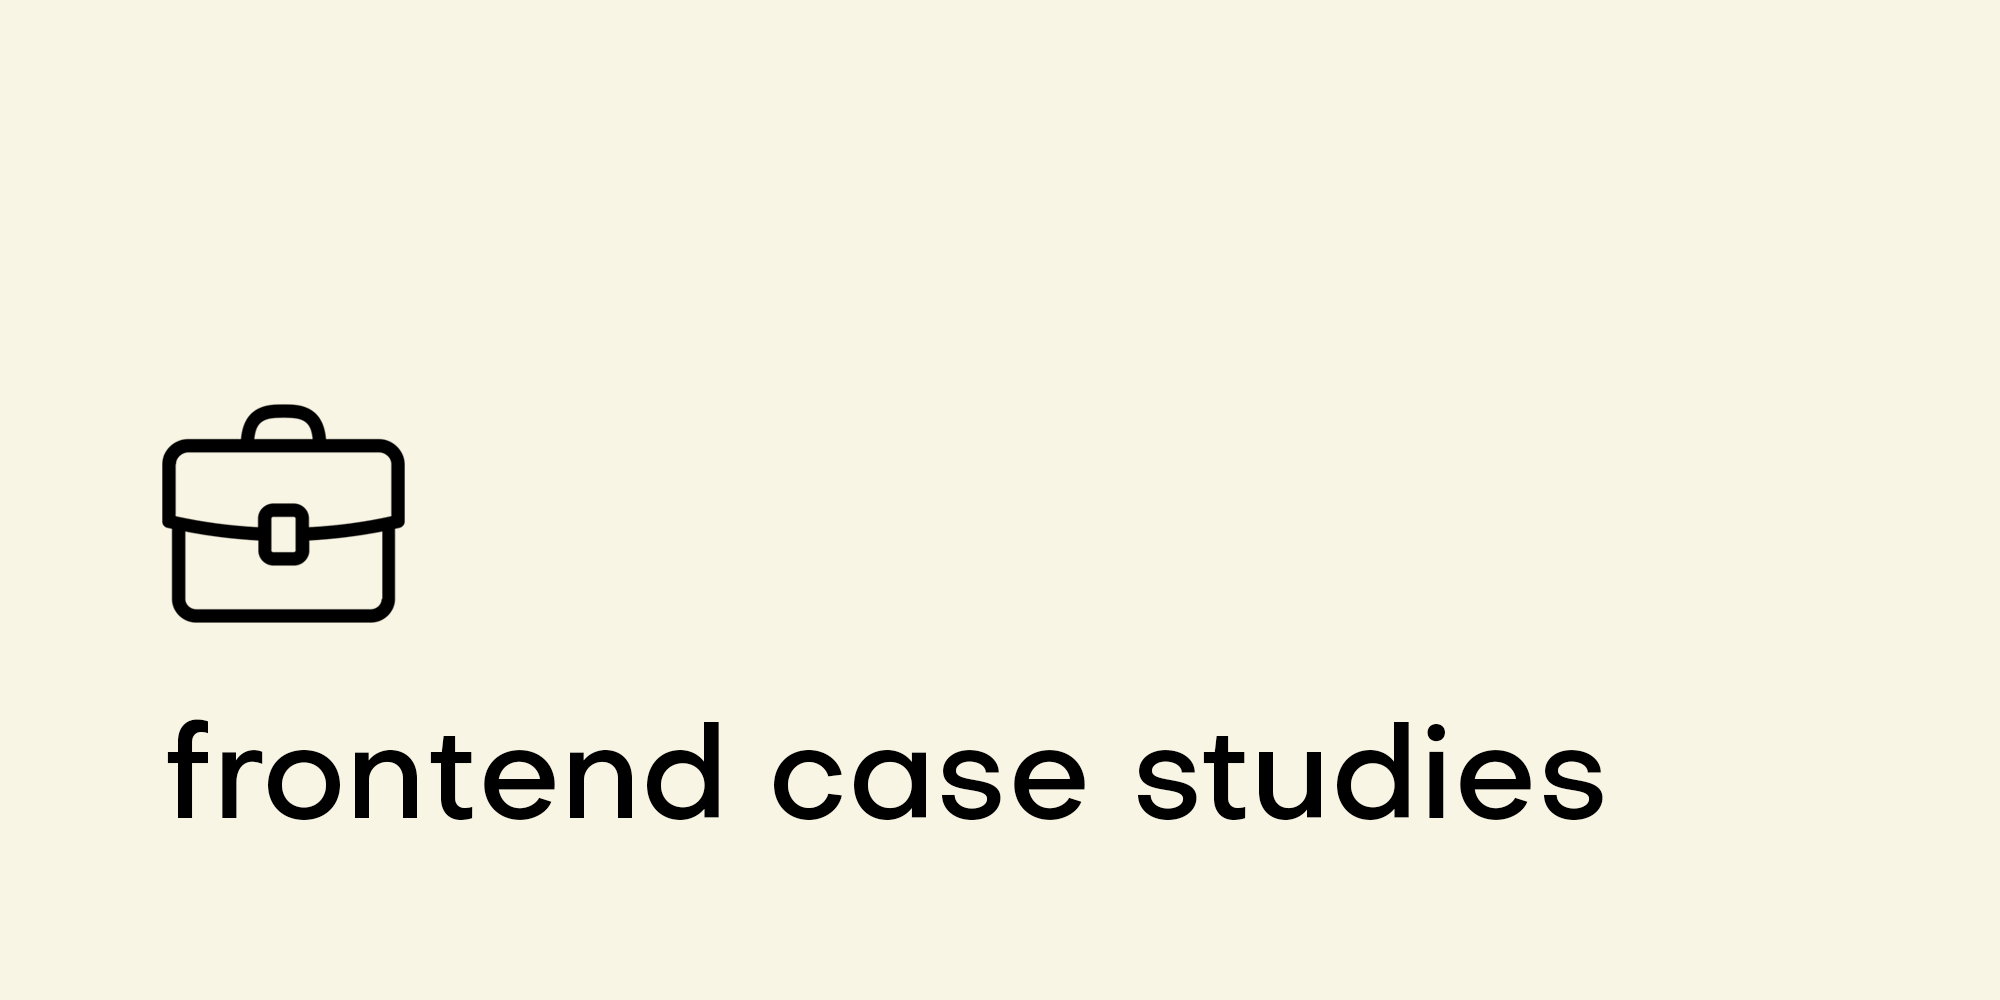 GitHub - andrew--r/frontend-case-studies: 💼 A curated list